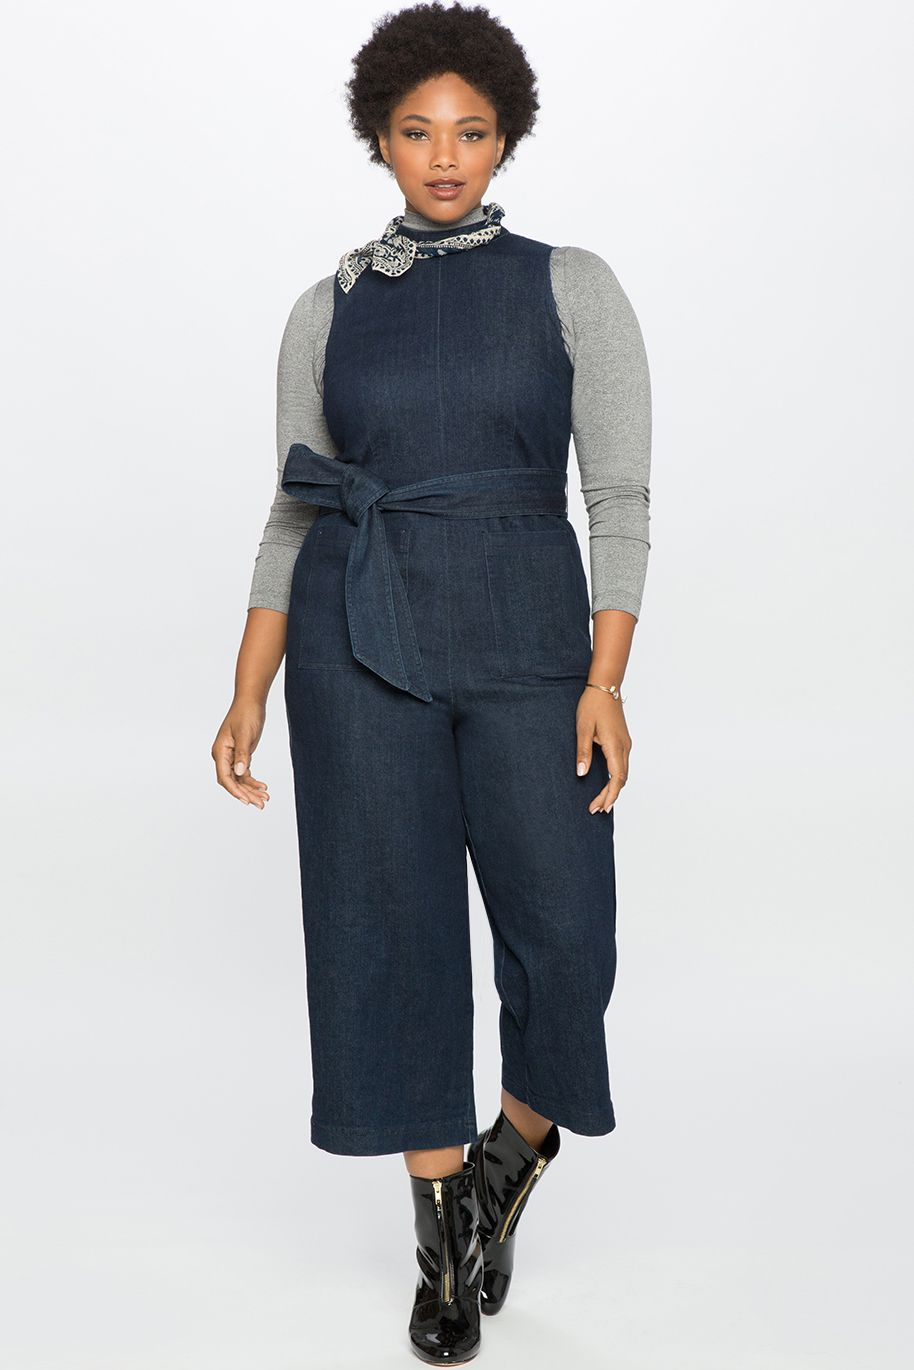 Where to Shop for Petite Plus-Size Clothes - Racked